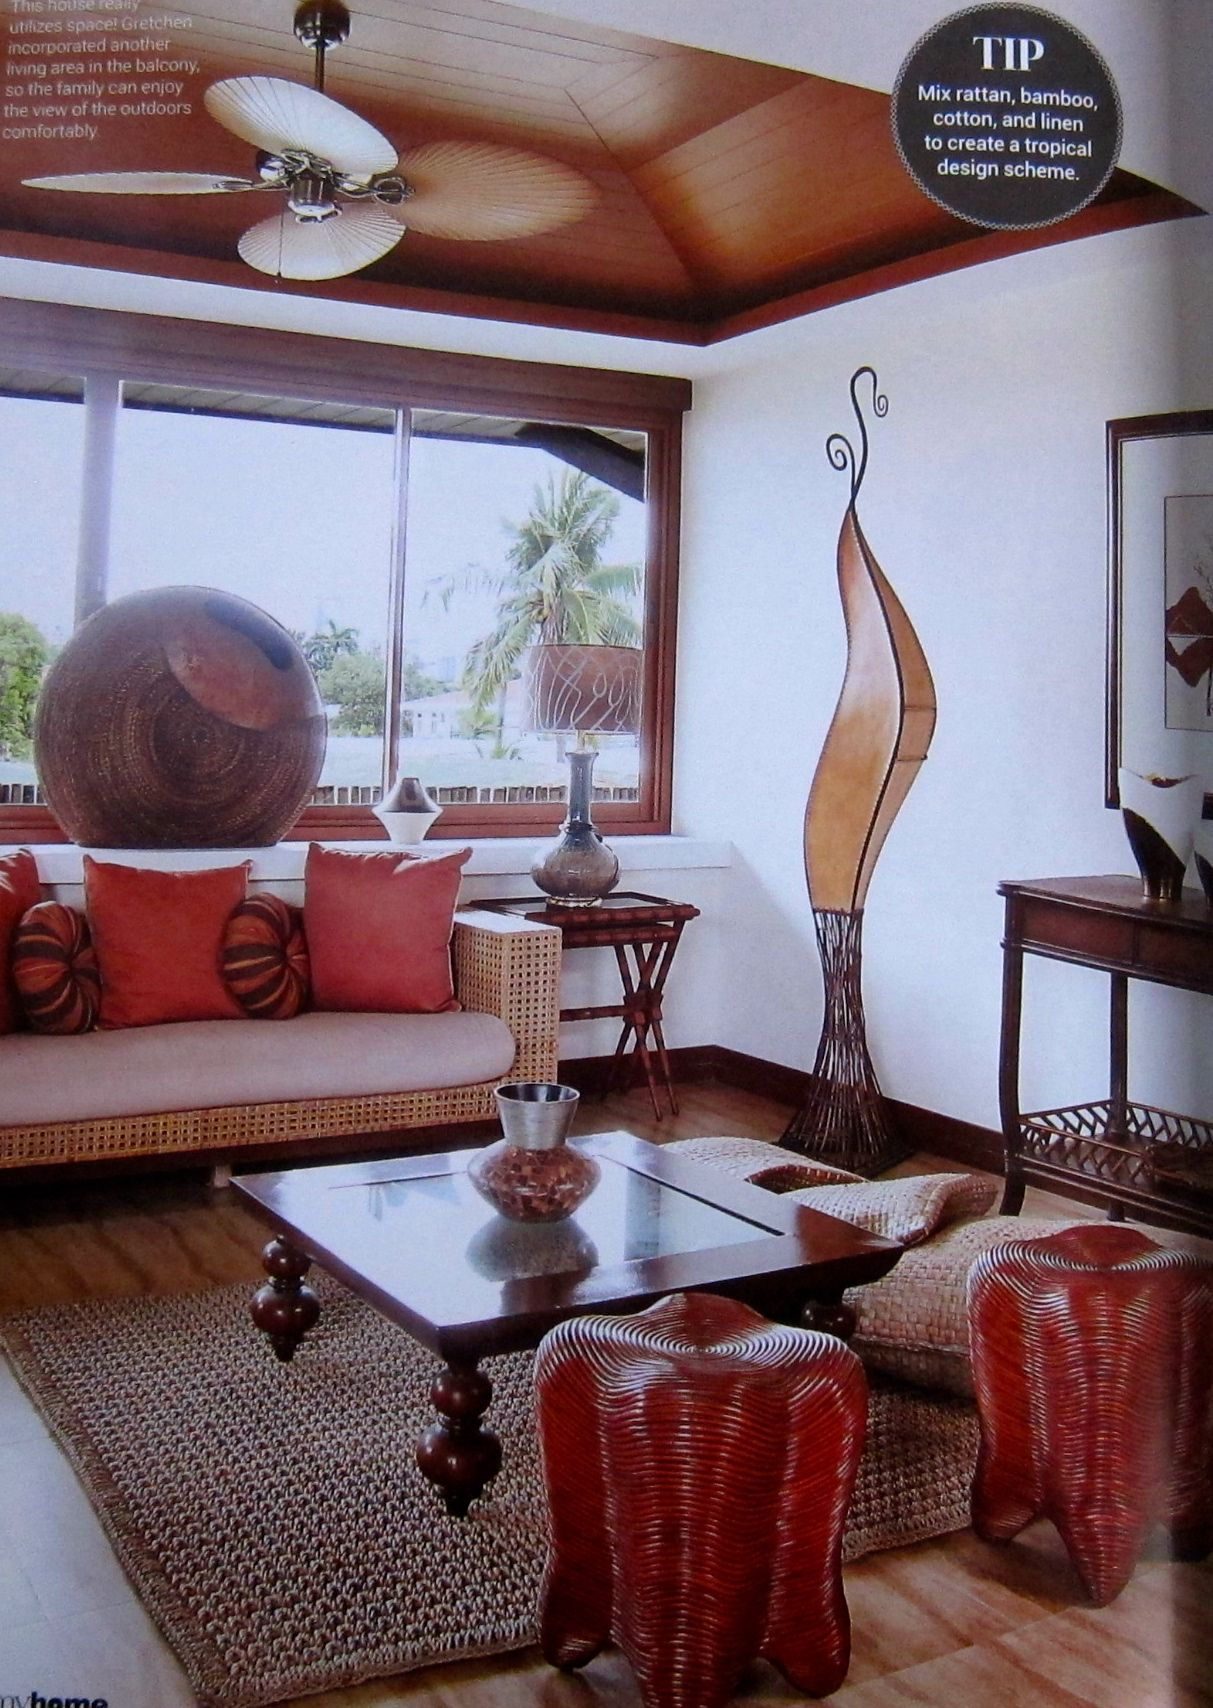 Modern furniture philippines from cebu to the world modern living lifestyle features the Home furniture philippines online